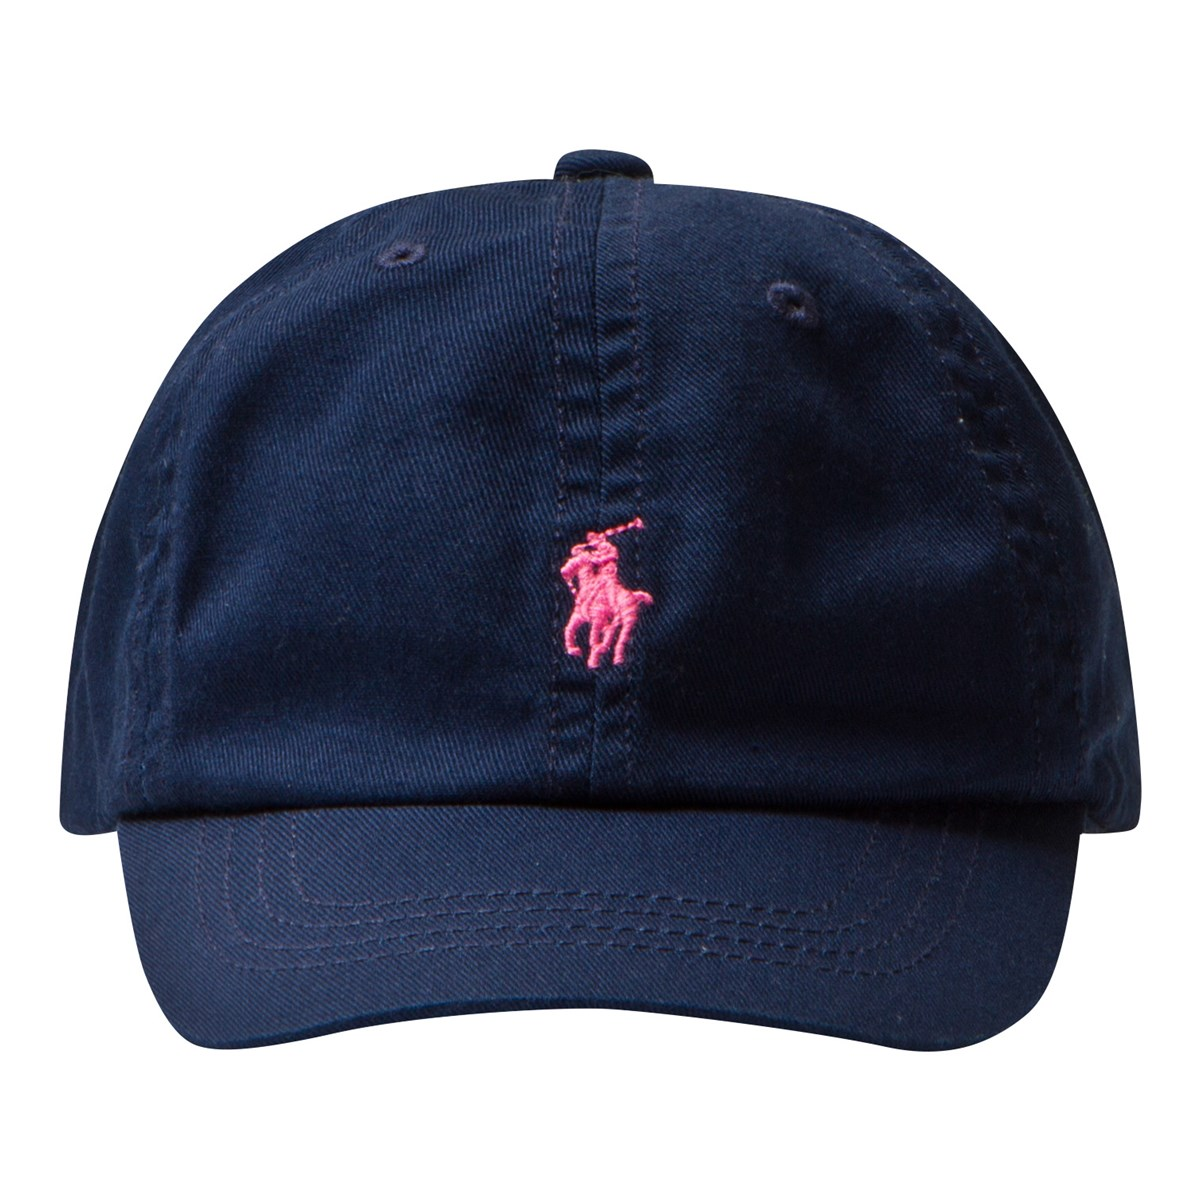 ea052f2173b Ralph Lauren - Cotton Chino Baseball Cap Spring Navy - Babyshop.com